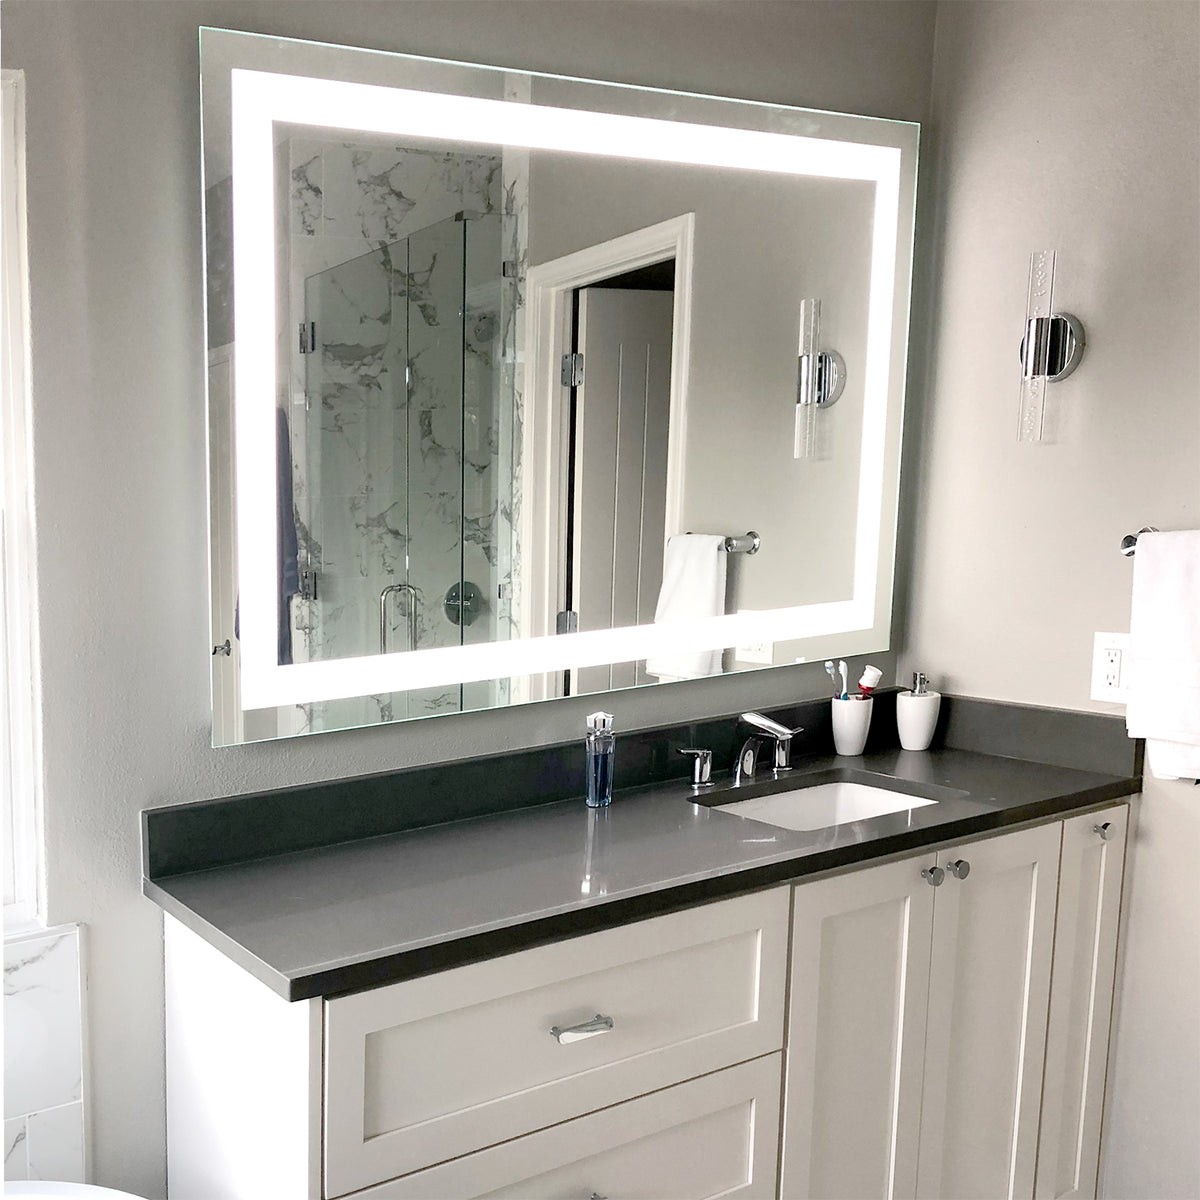 Front Lighted Led Bathroom Vanity Mirror 48 X 40 Rectangular Mirrors Marble